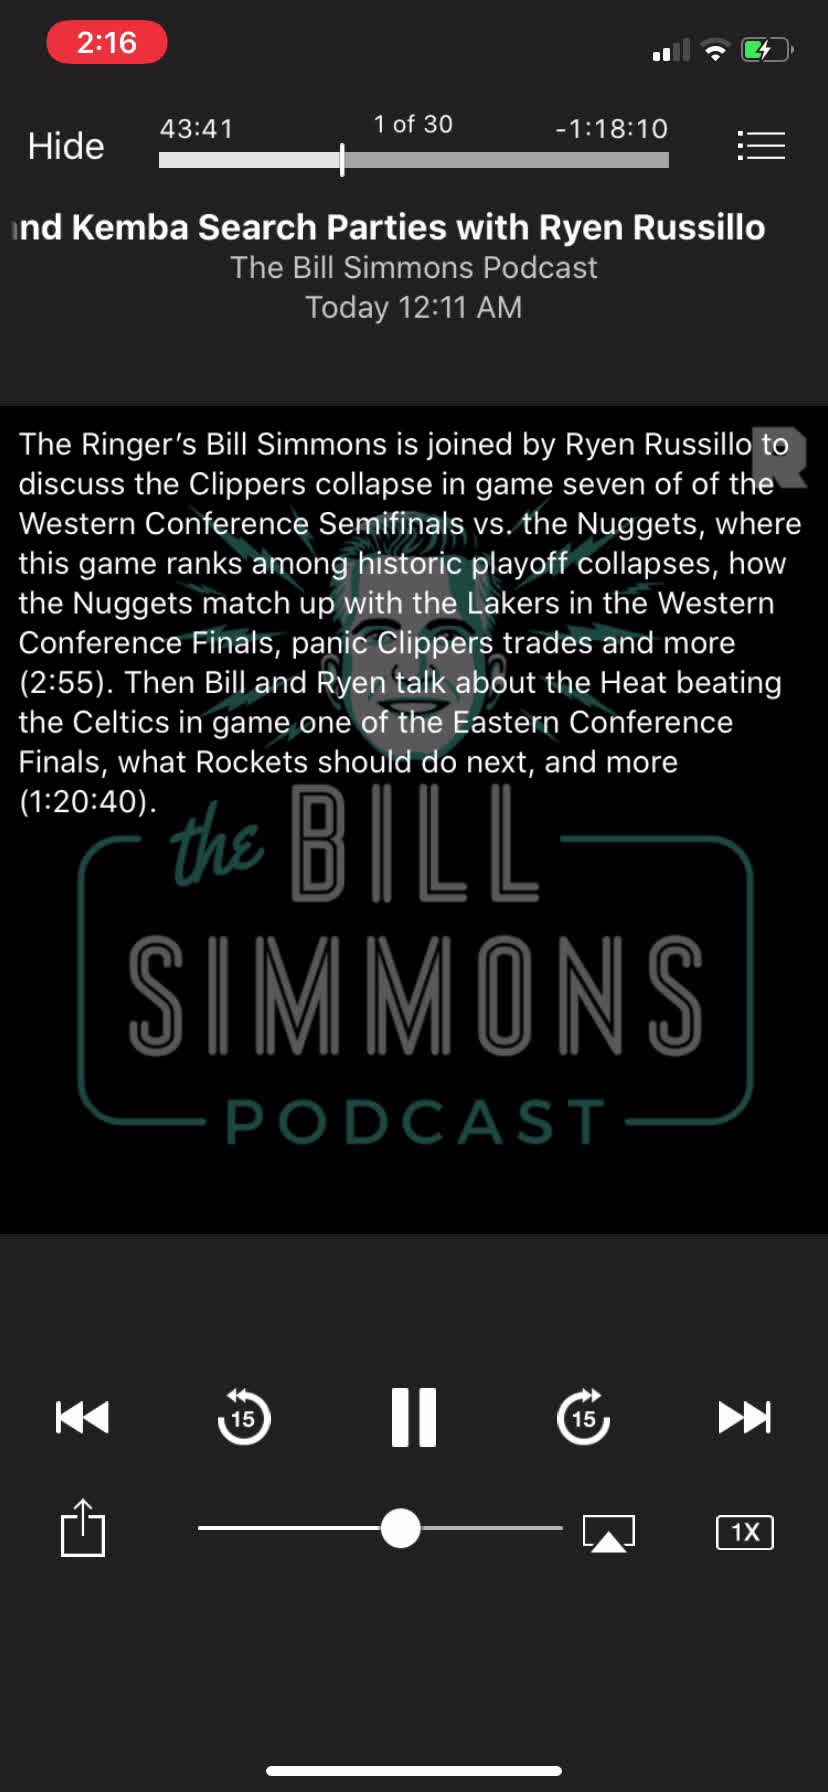 Bill Simmons saying LeBron is not the best playoff player and makes the case for Jokic as the best playoff player.